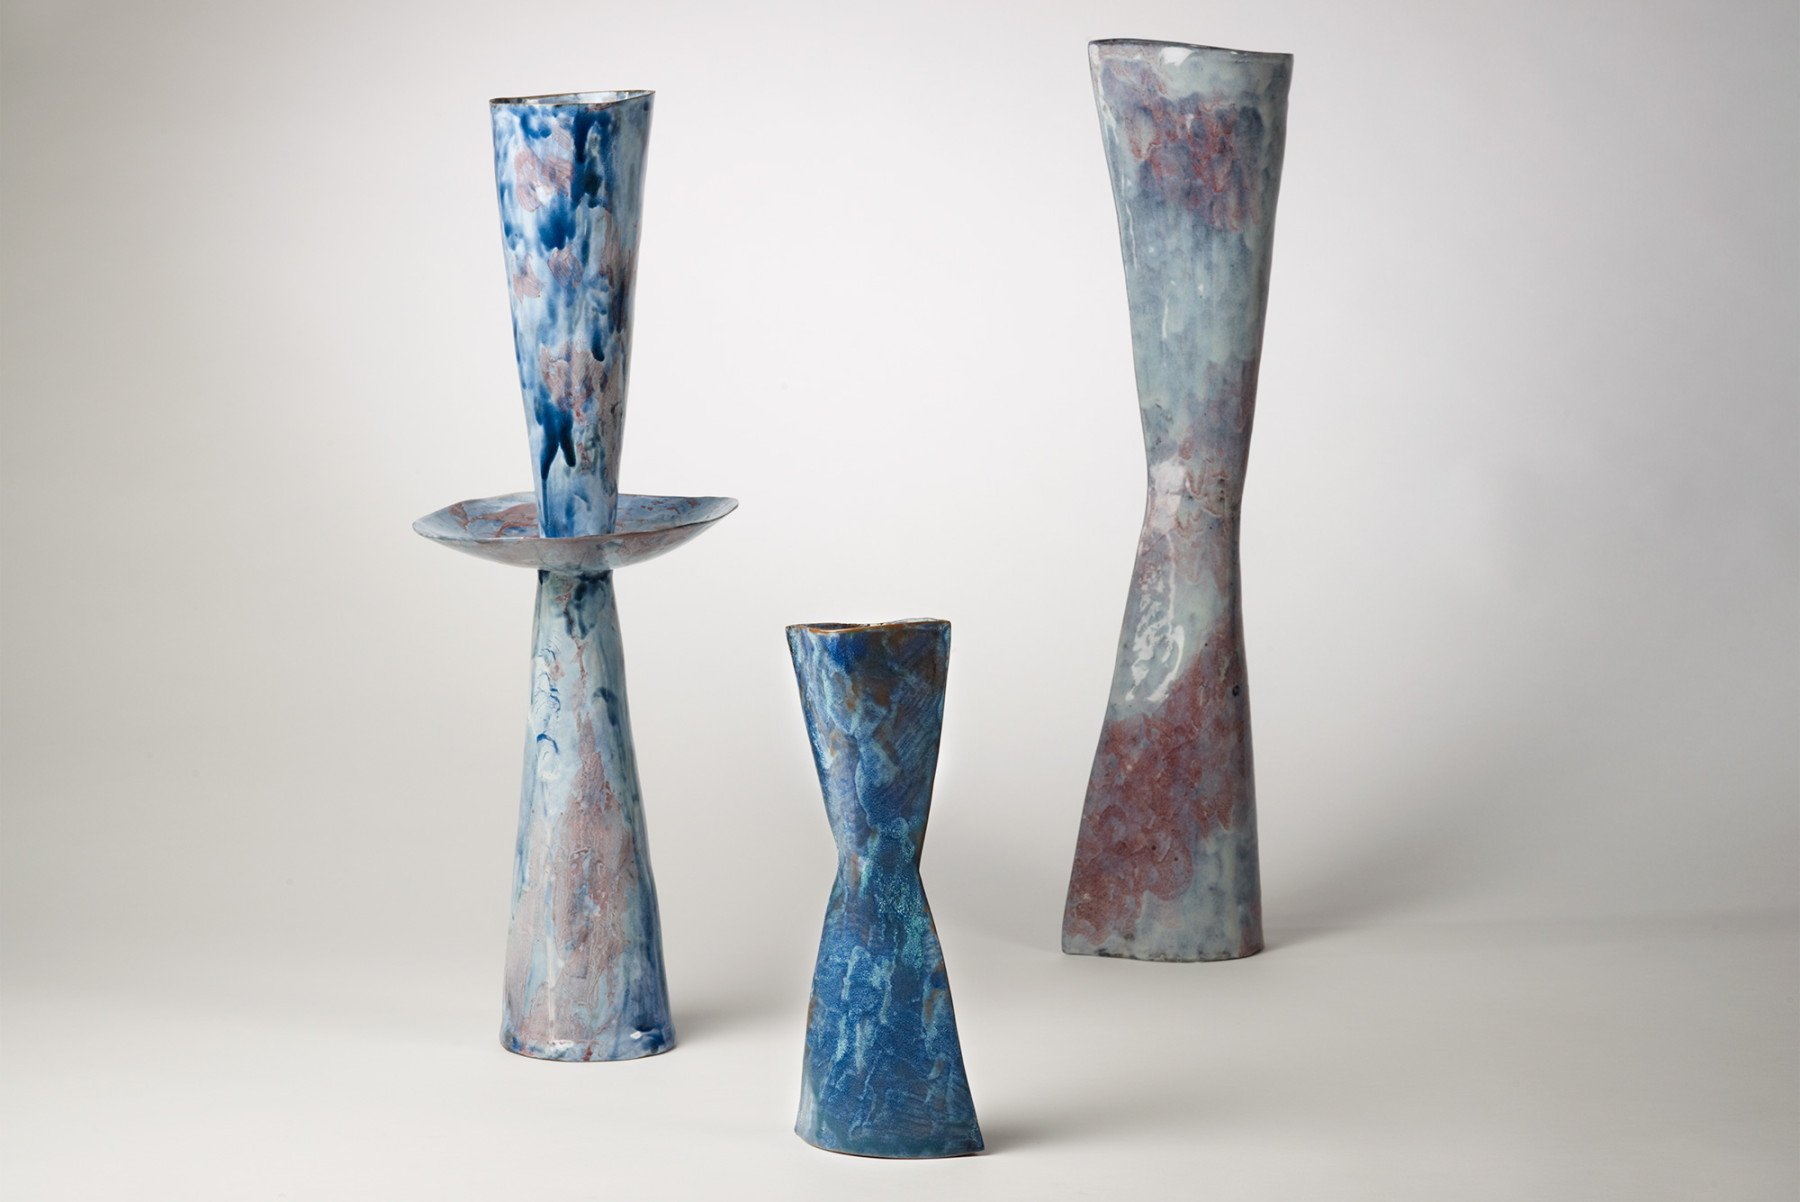 Three Fausto Melotti Vaso-Vescovo ceramic vases at Italian design and art gallery Casati Gallery